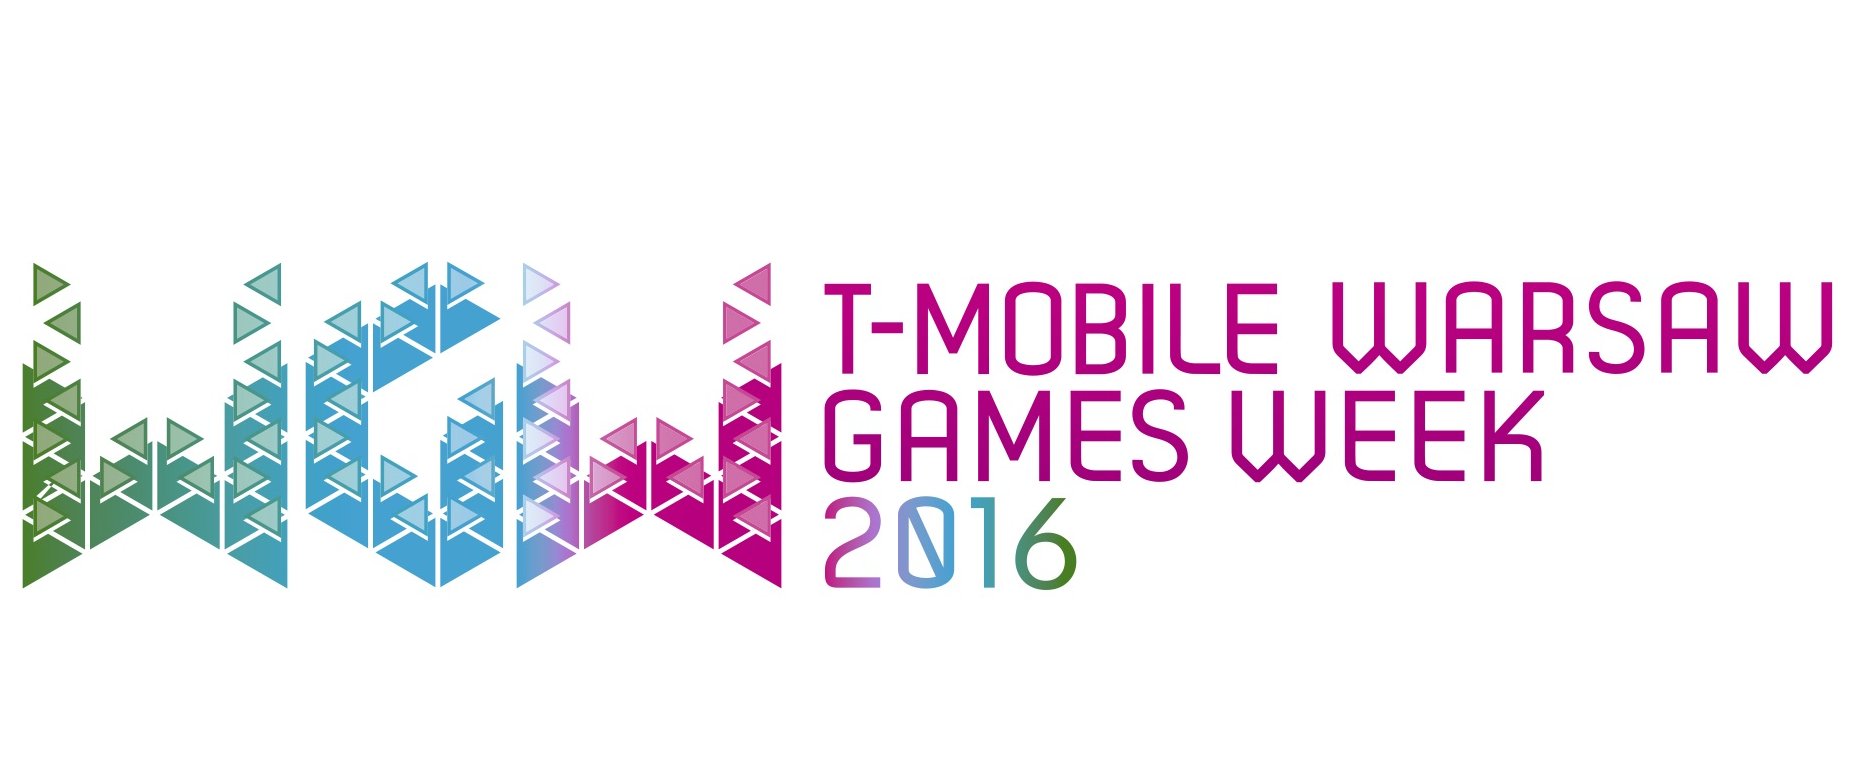 T-mobile_warsaw_games_week_2016_v2